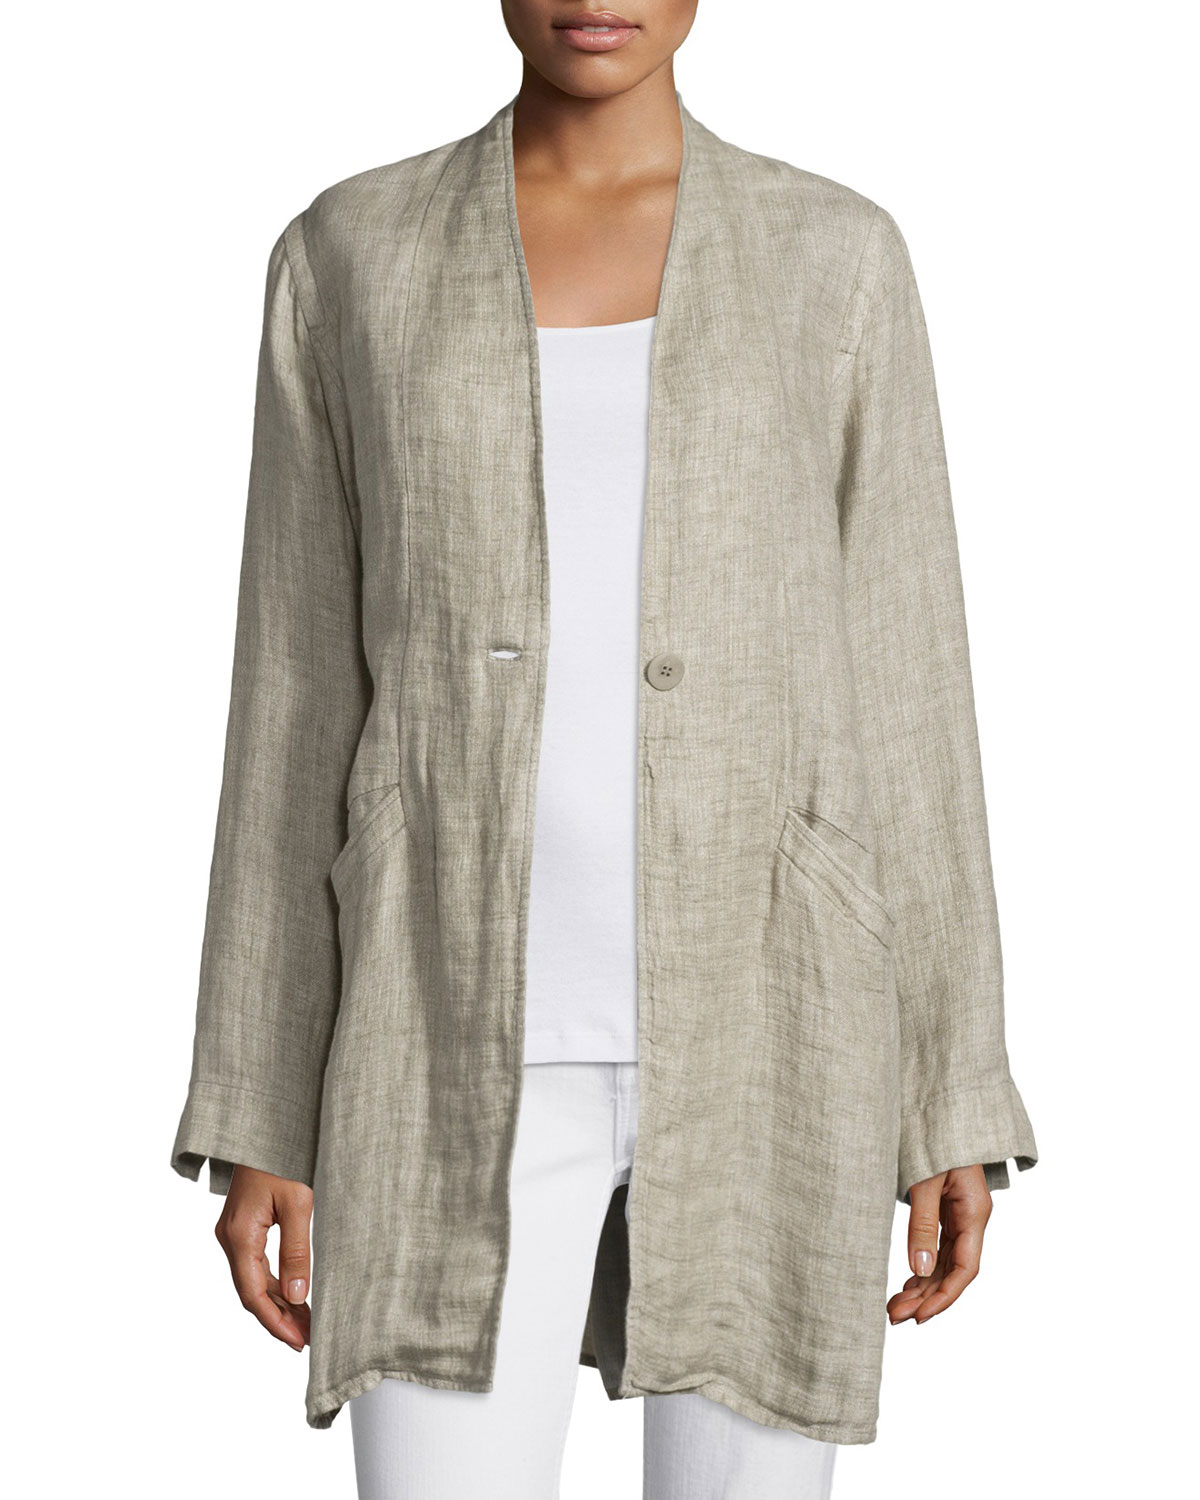 Organic Linen One-Button Coat, Natural, Petite, Women's, Size: PL (14/16) - Eileen Fisher